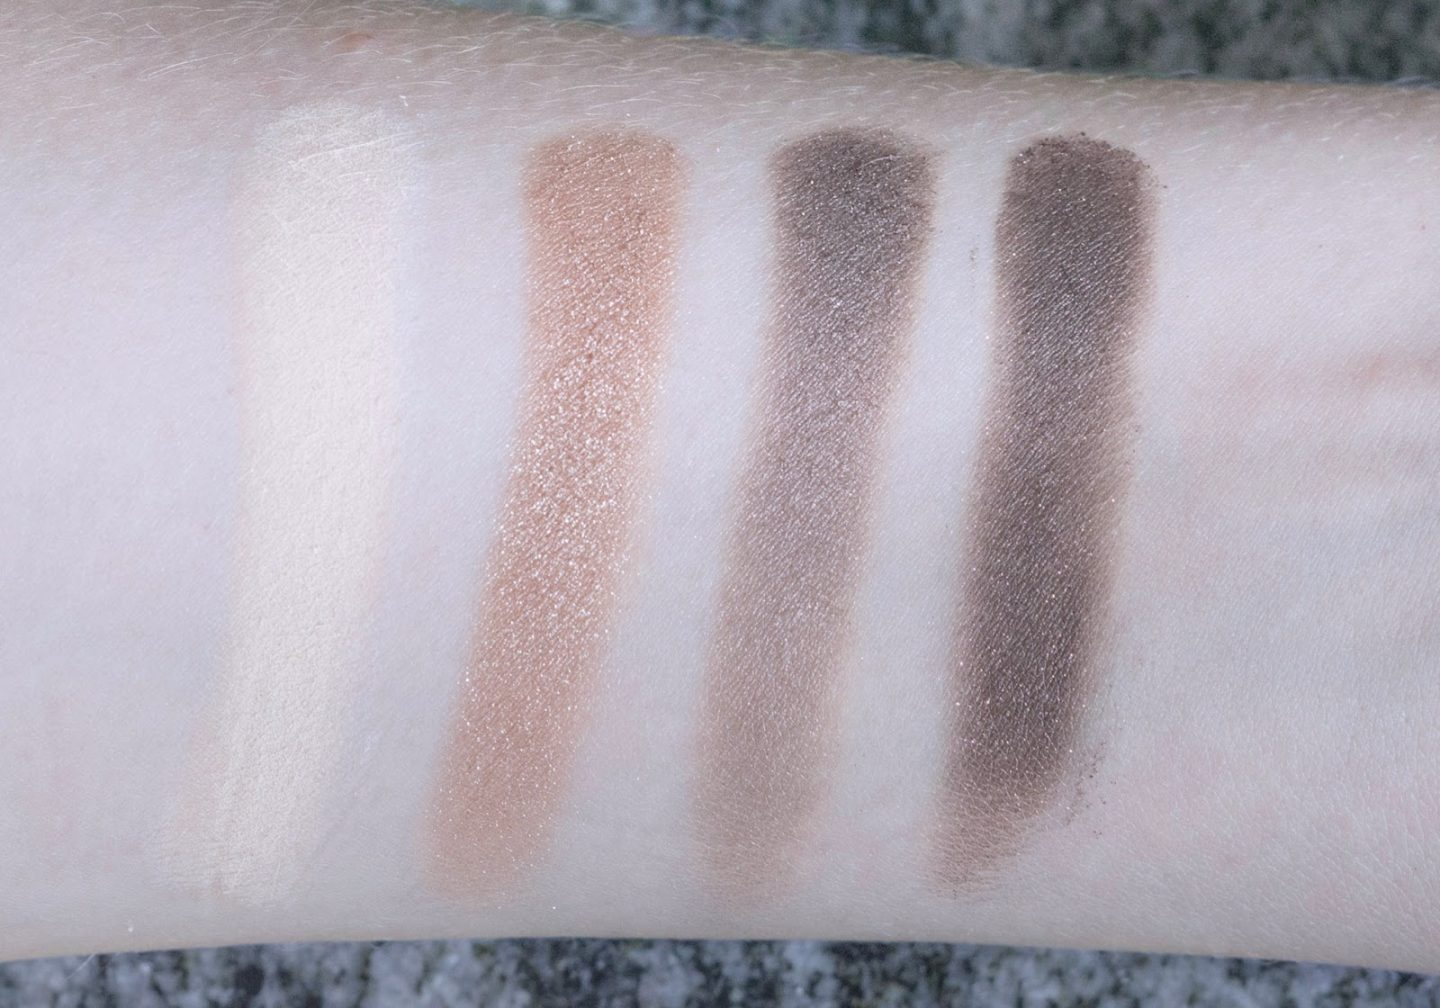 The Body Shop Down to Earth Palette swatches